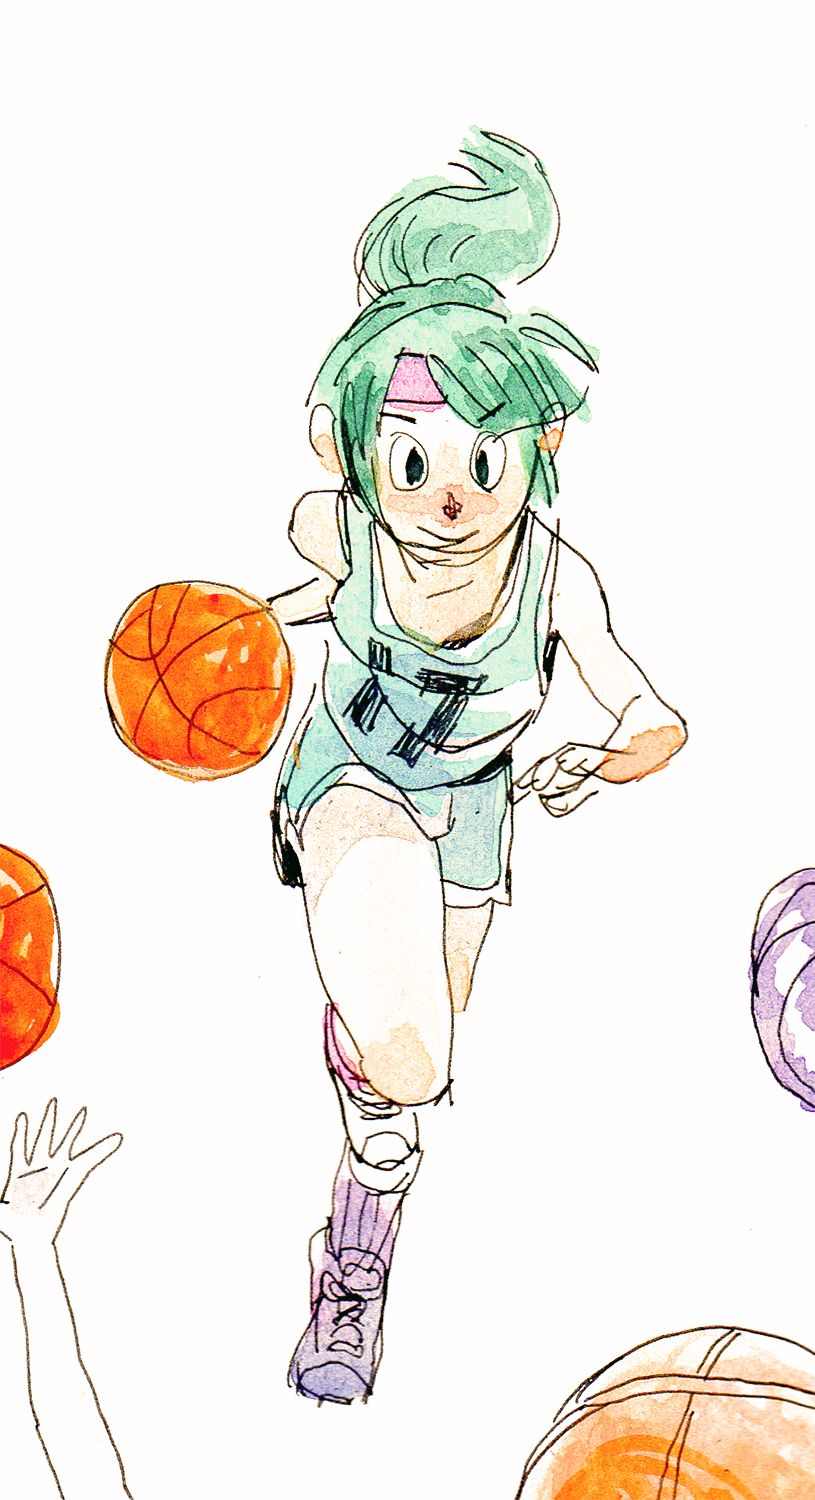 I have a confession to make I love sports manga. I have